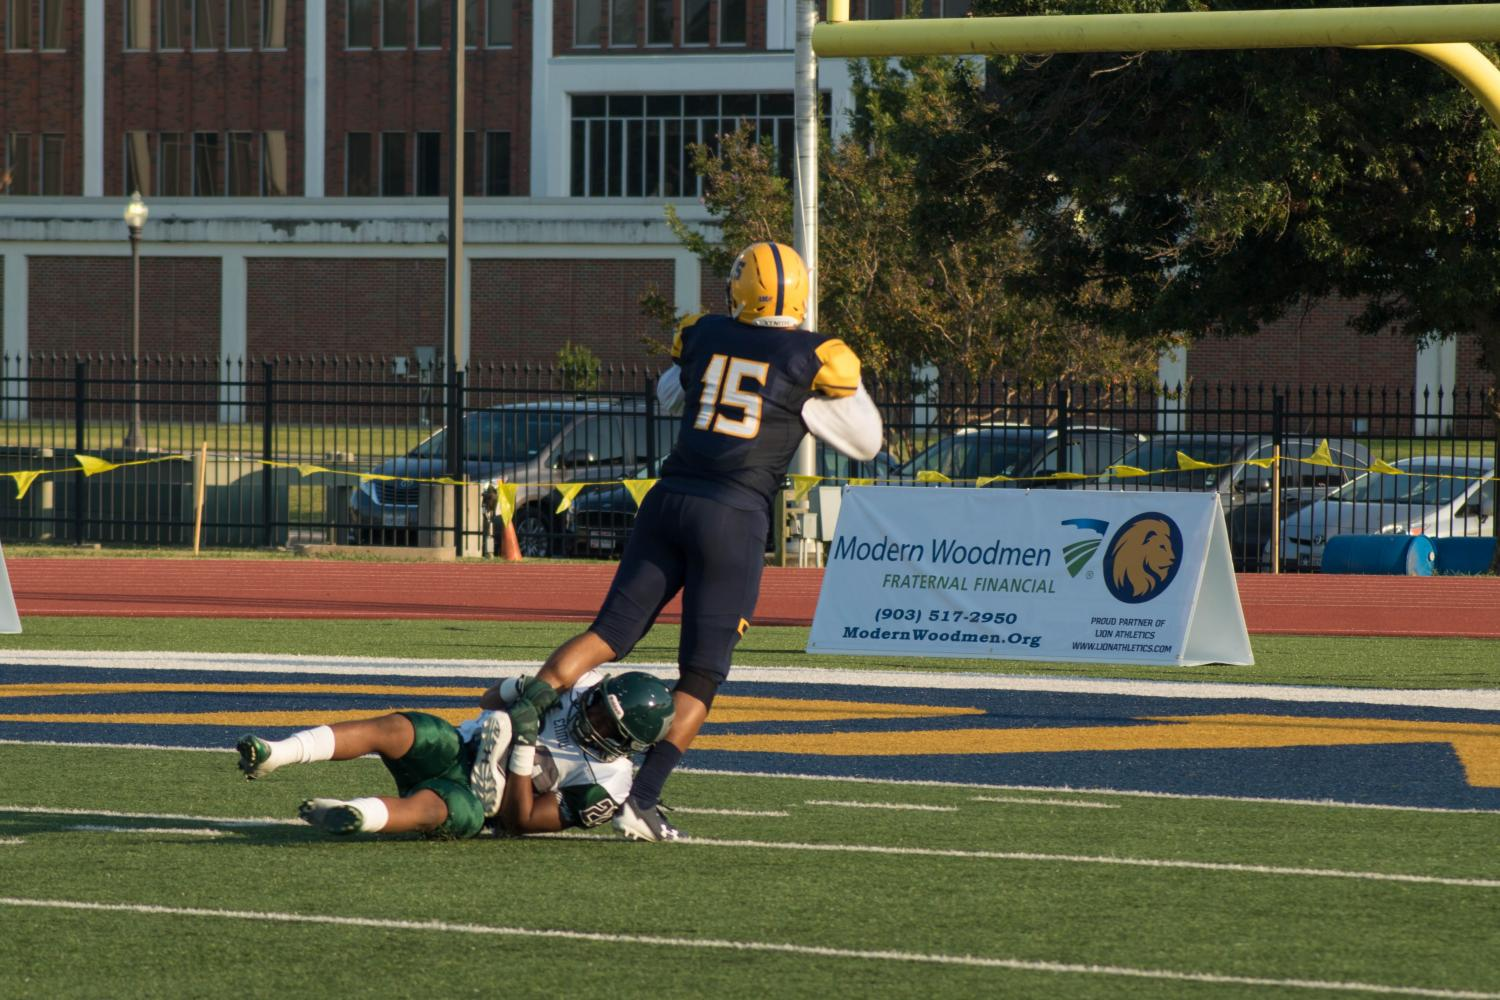 Vincent Hobbs fights off a tackler to score a touchdown